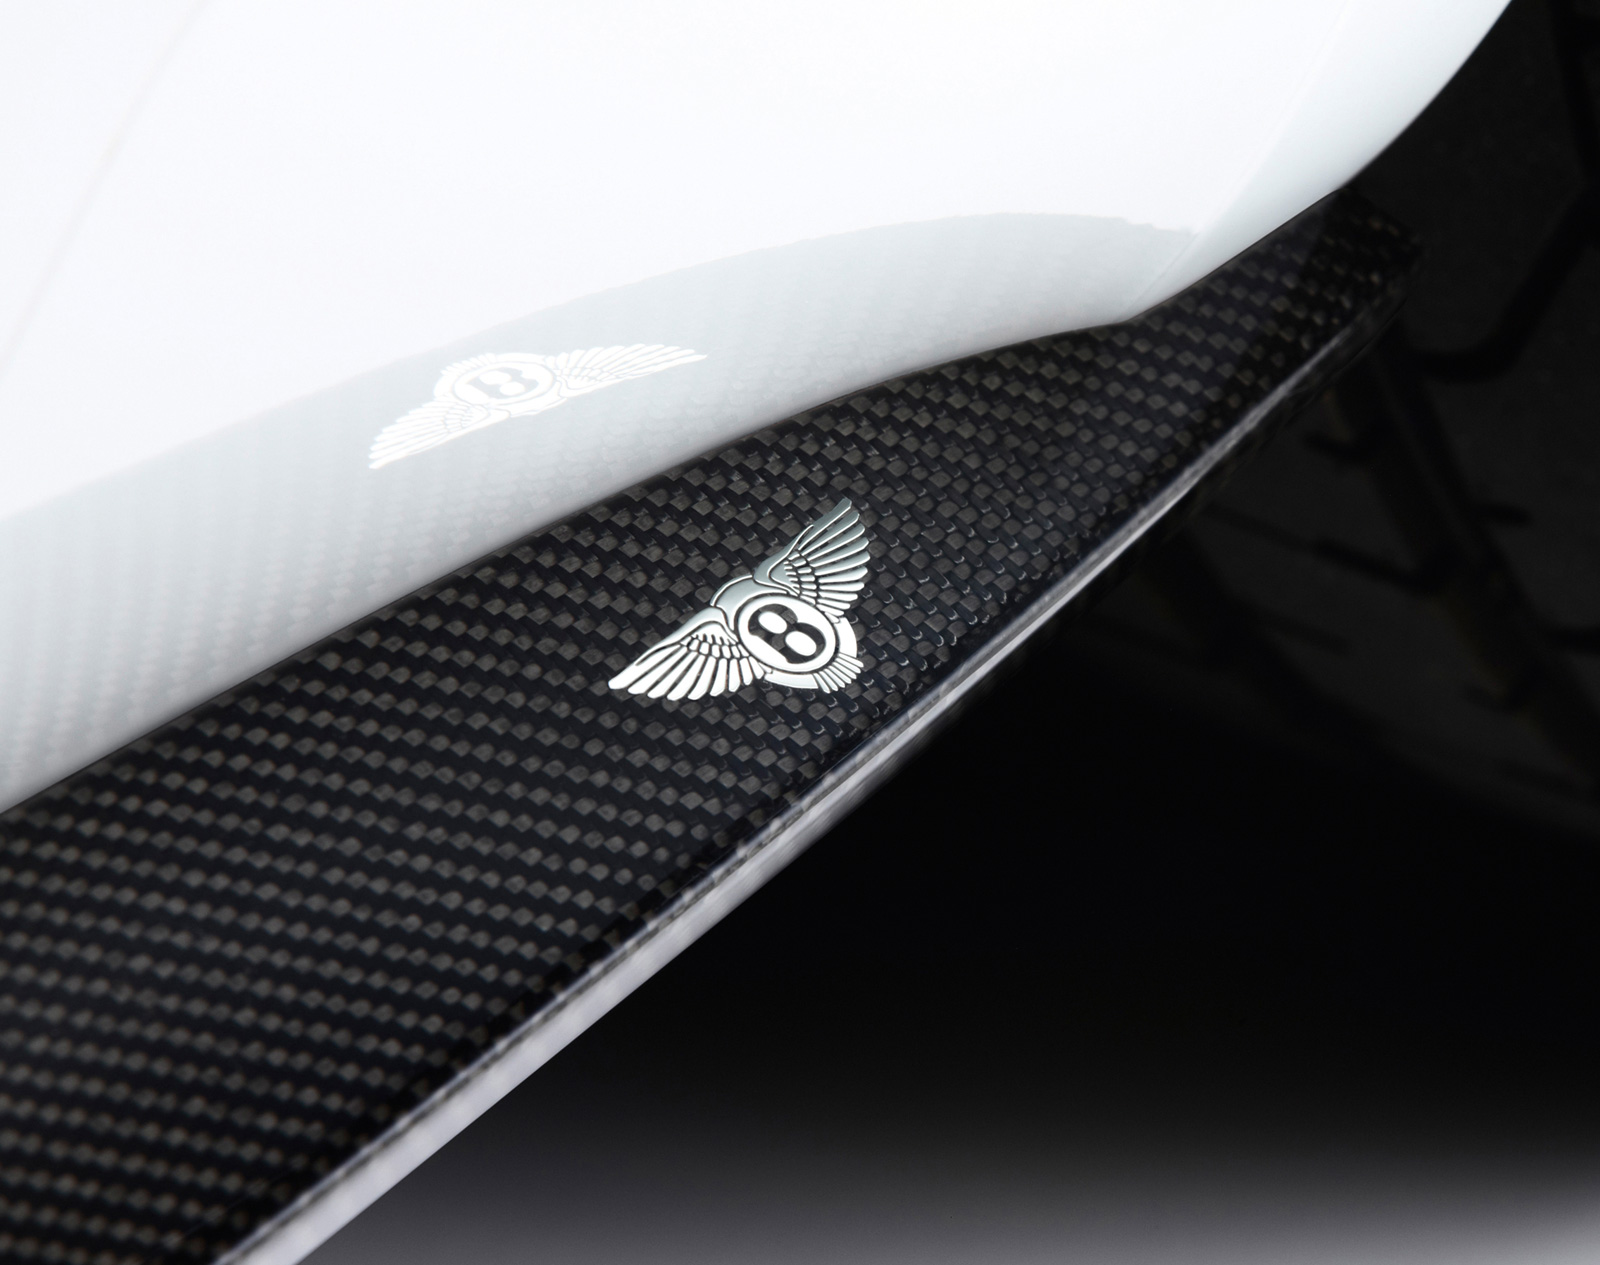 Bentley Detailing Featured on Sleek Extension Blades